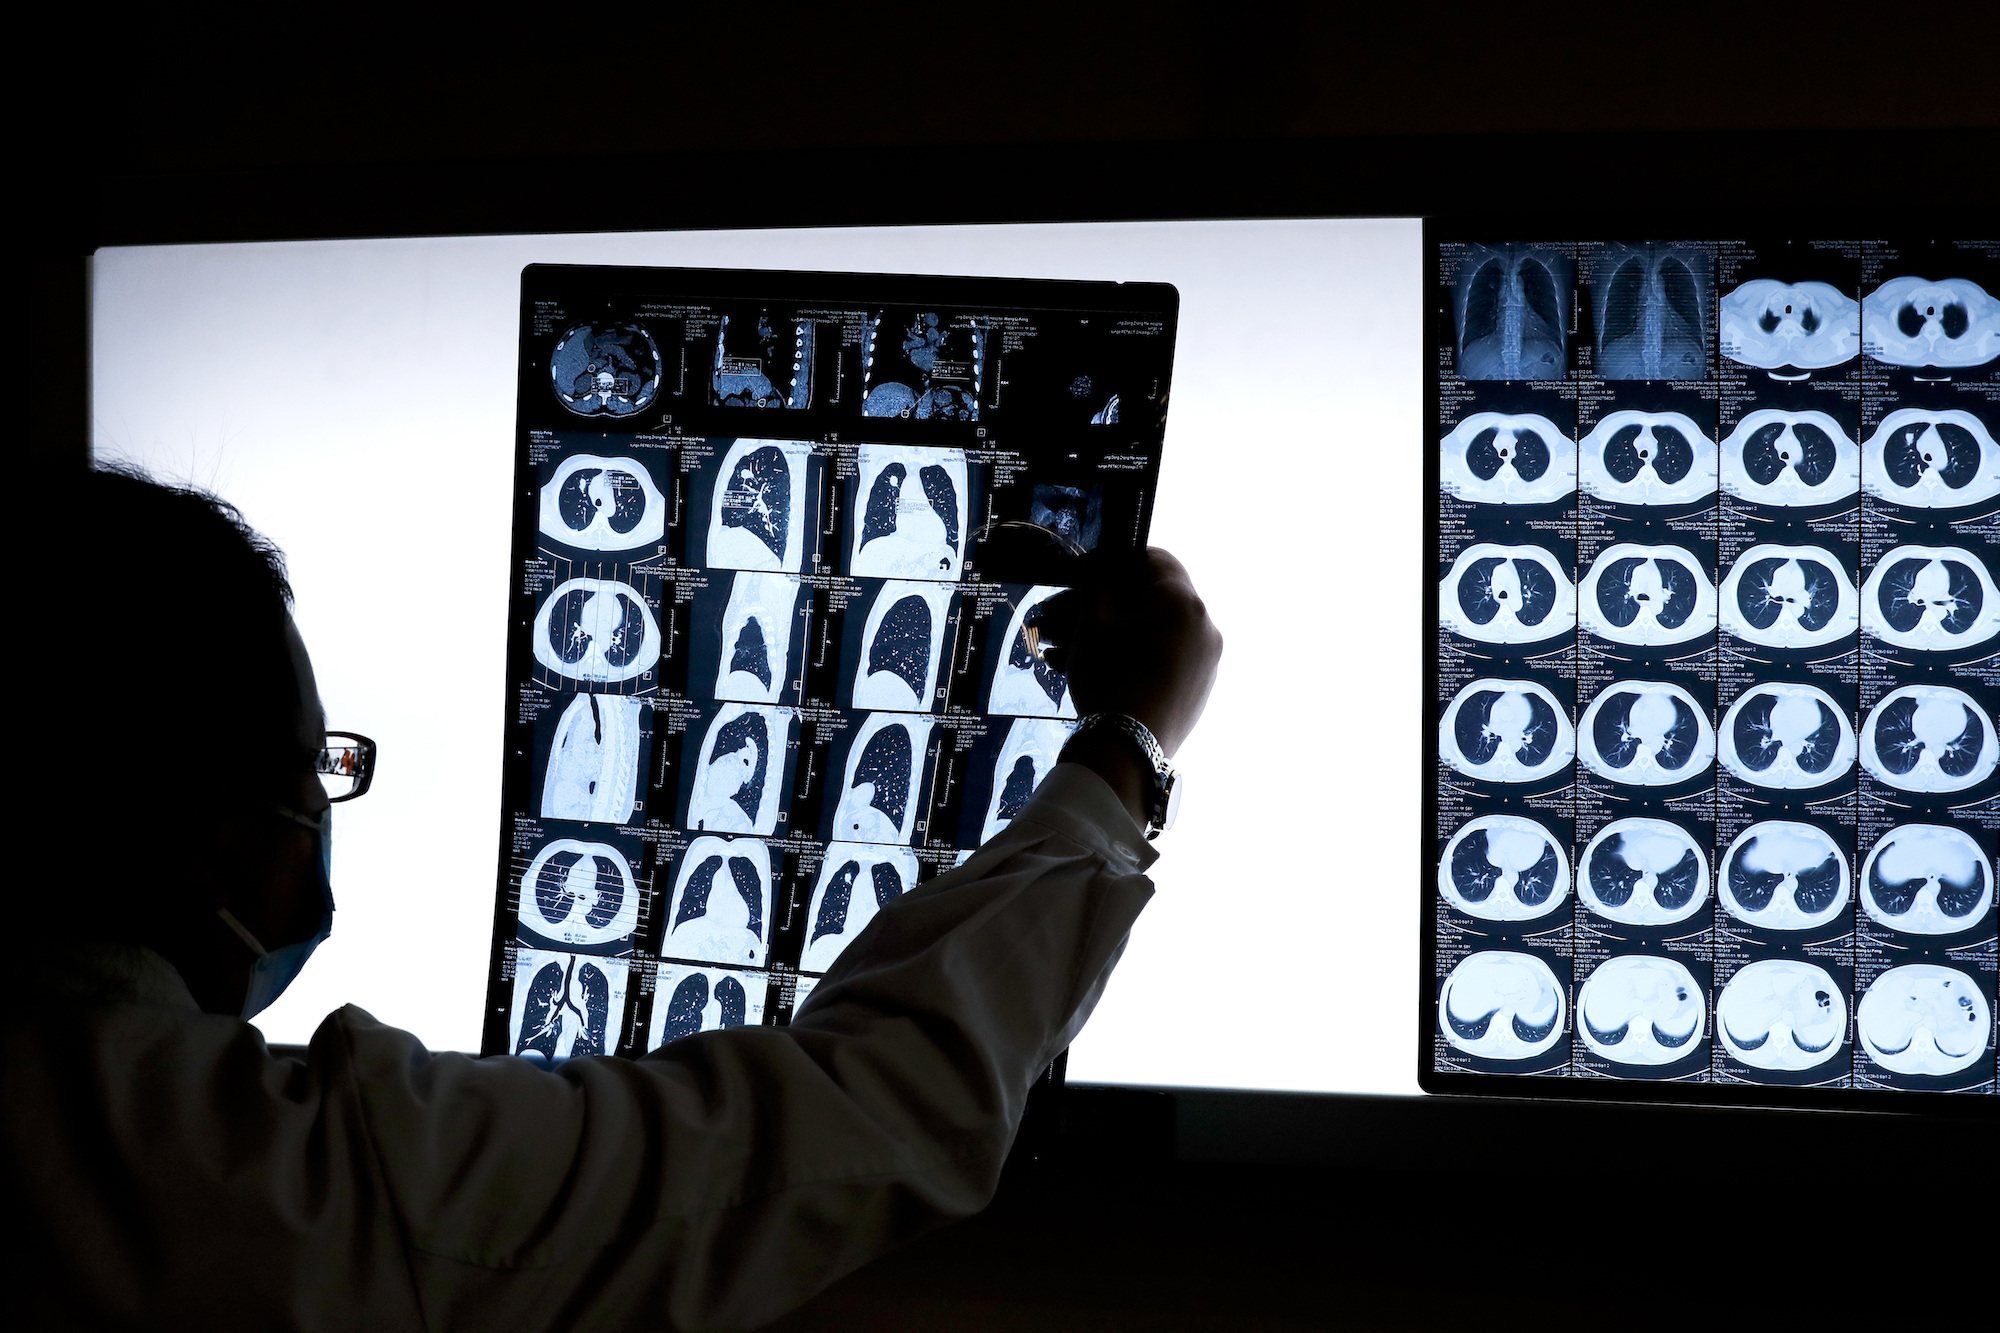 An image of a doctor looking at medical scans.